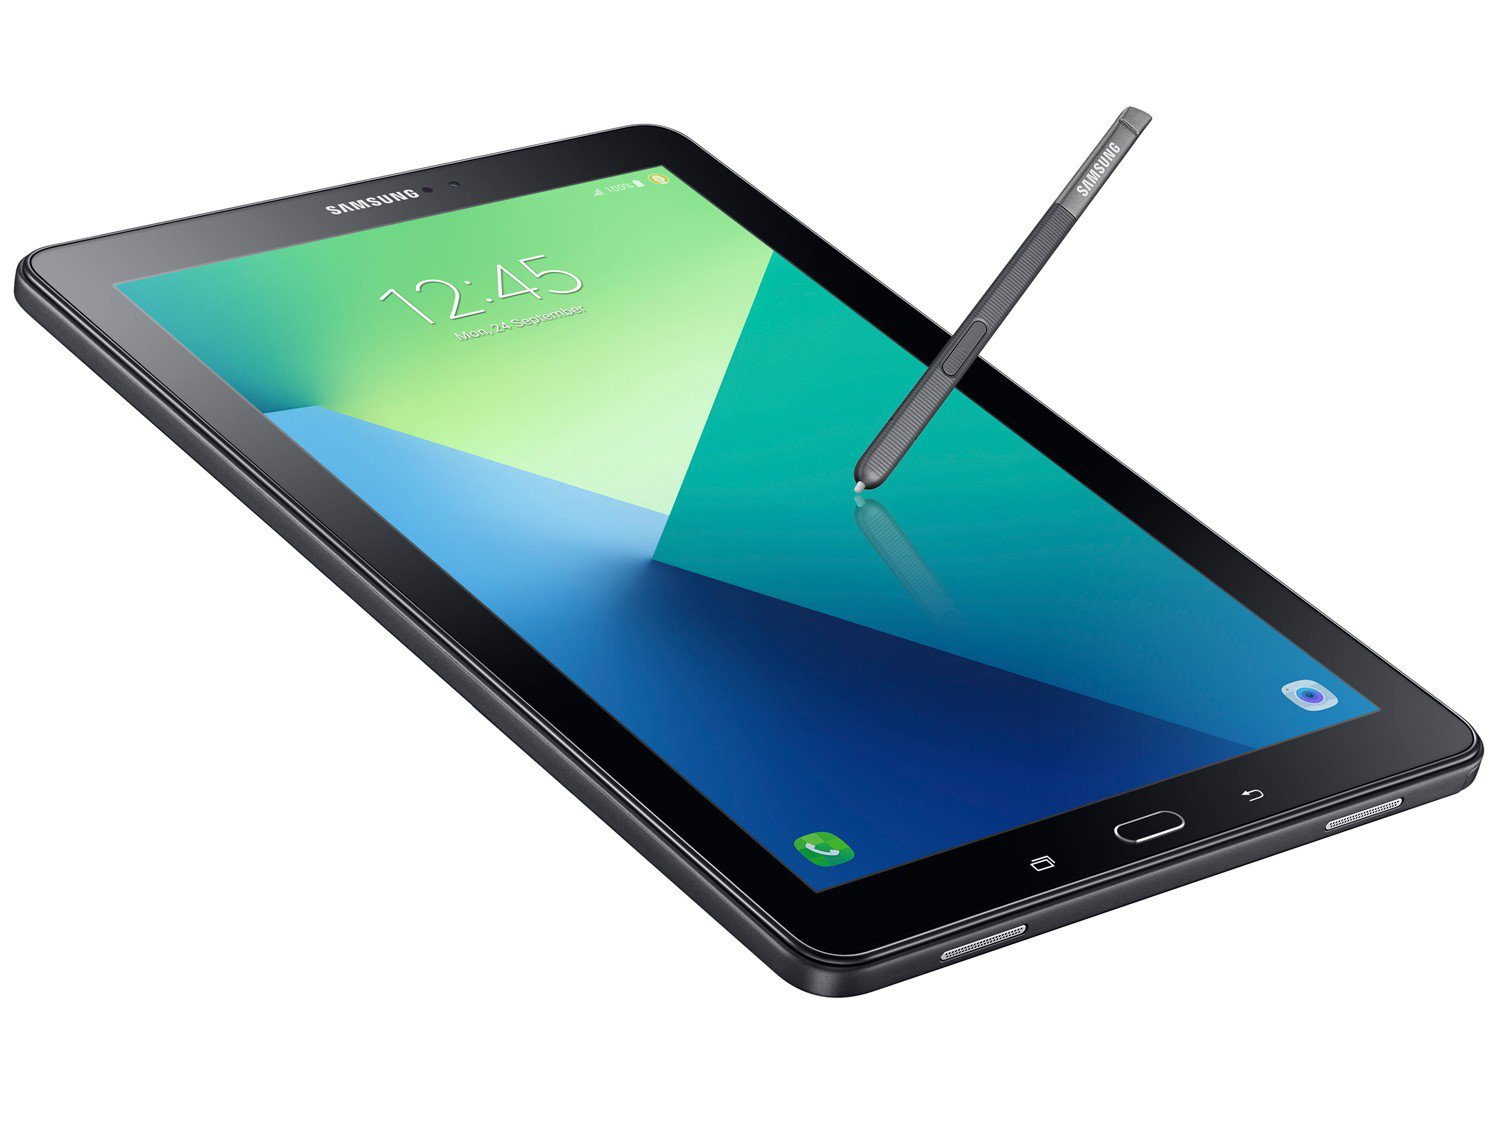 Foto 7 - Tablet Samsung Galaxy Tab A Note P585 16GB 10,1 - 4G Wi-Fi Android 7 Proc. Octa Core Câm 8MP